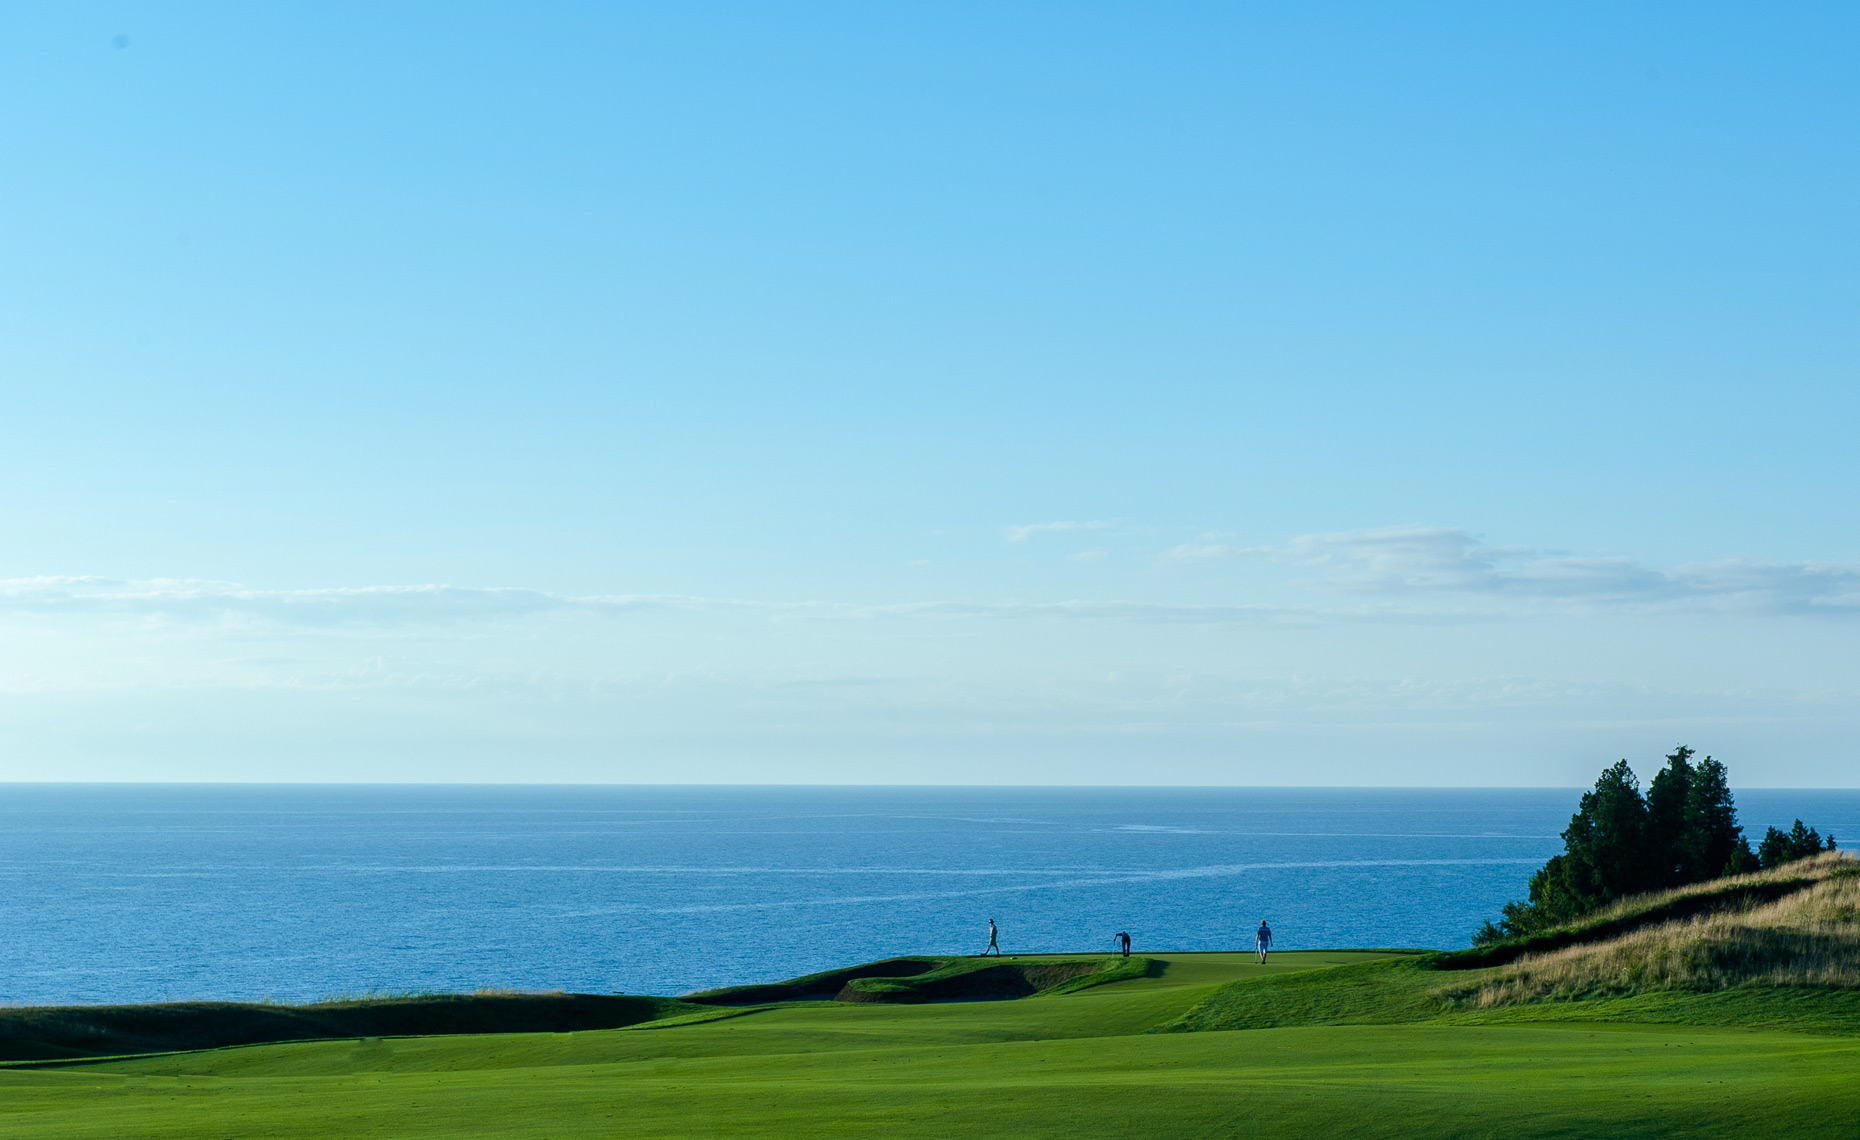 Neil-Colton-photographer-arcadia-bluffs-gc-fine-art-144-wr